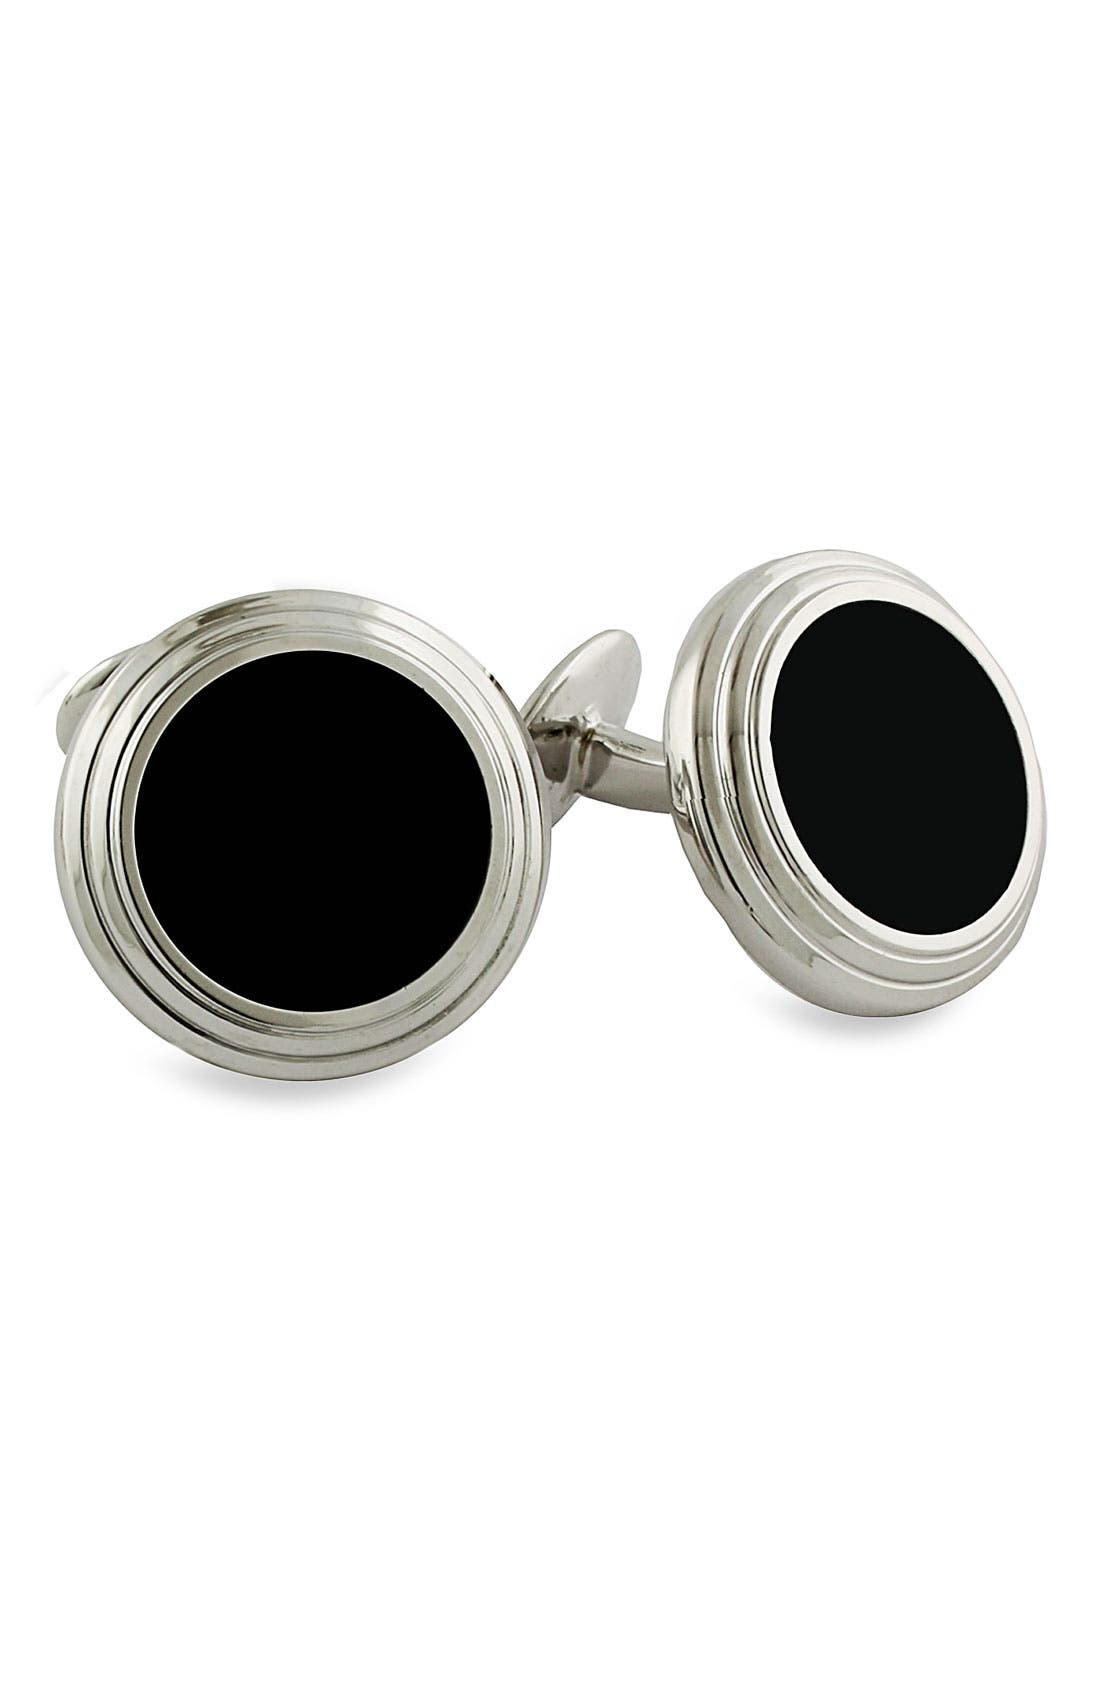 Main Image - David Donahue Onyx Cuff Links